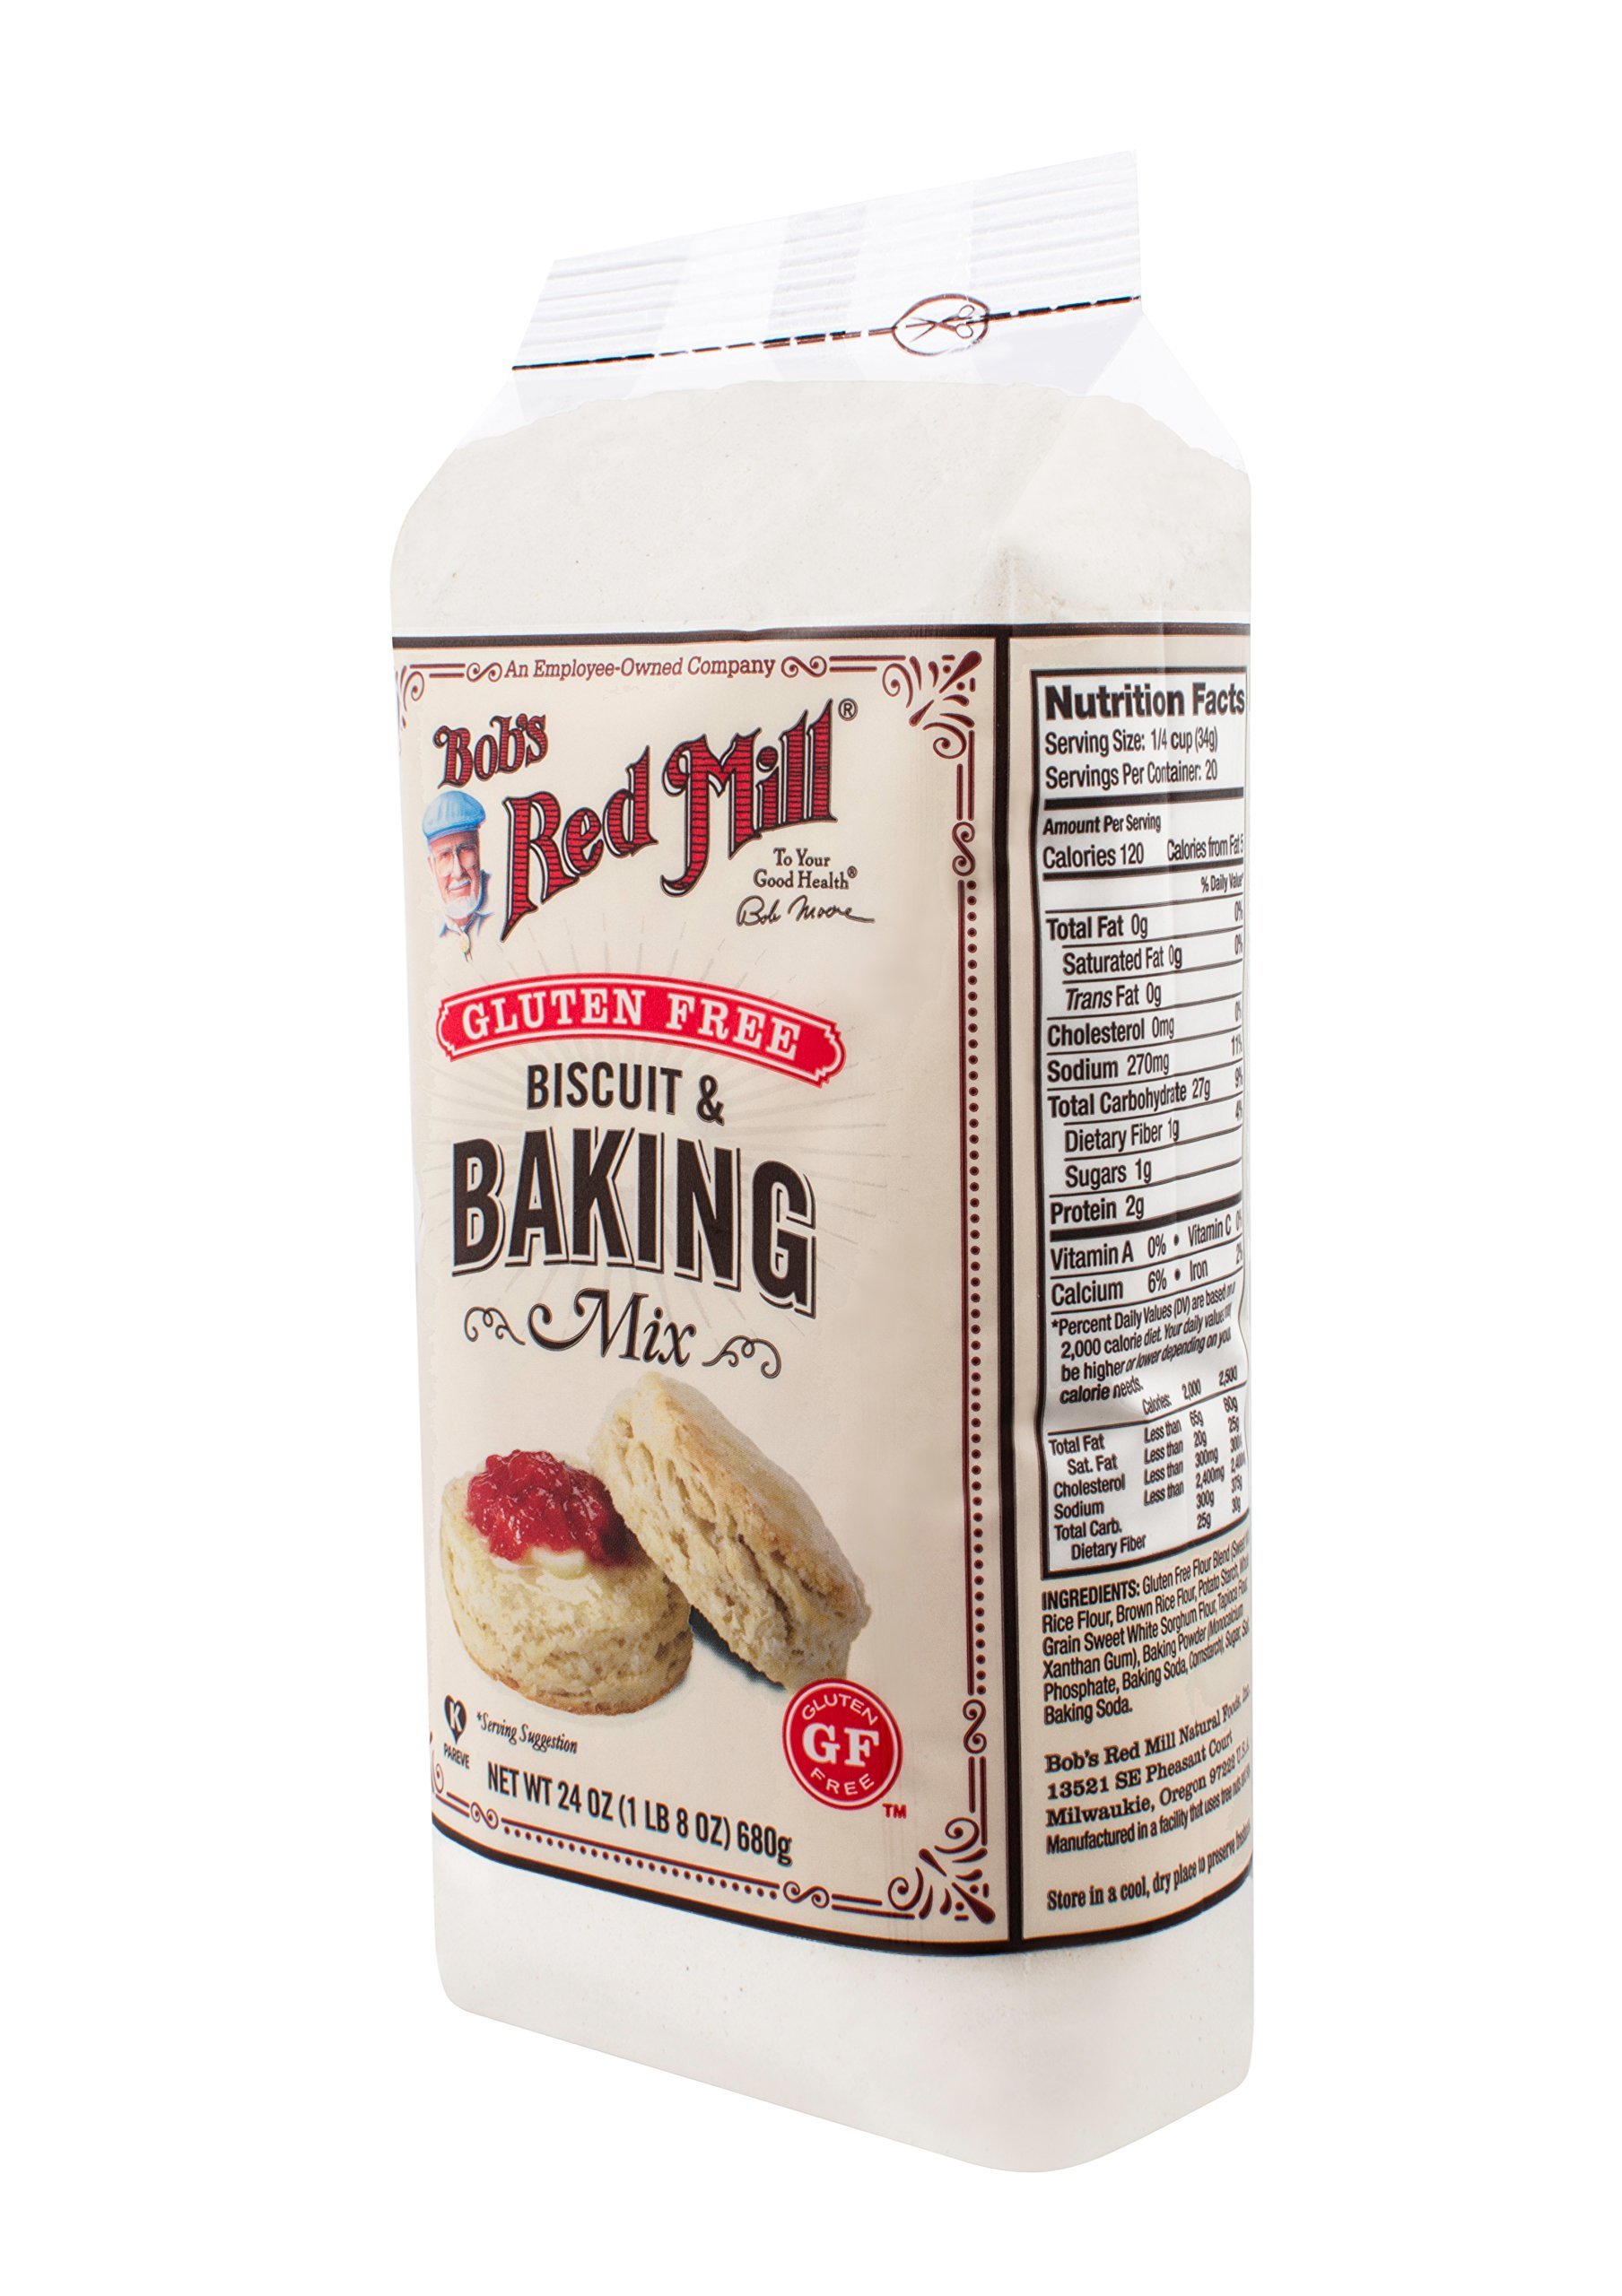 Bob's Red Mill Gluten Free Biscuit & Baking Mix, 24-ounce by Bob's Red Mill (Image #6)